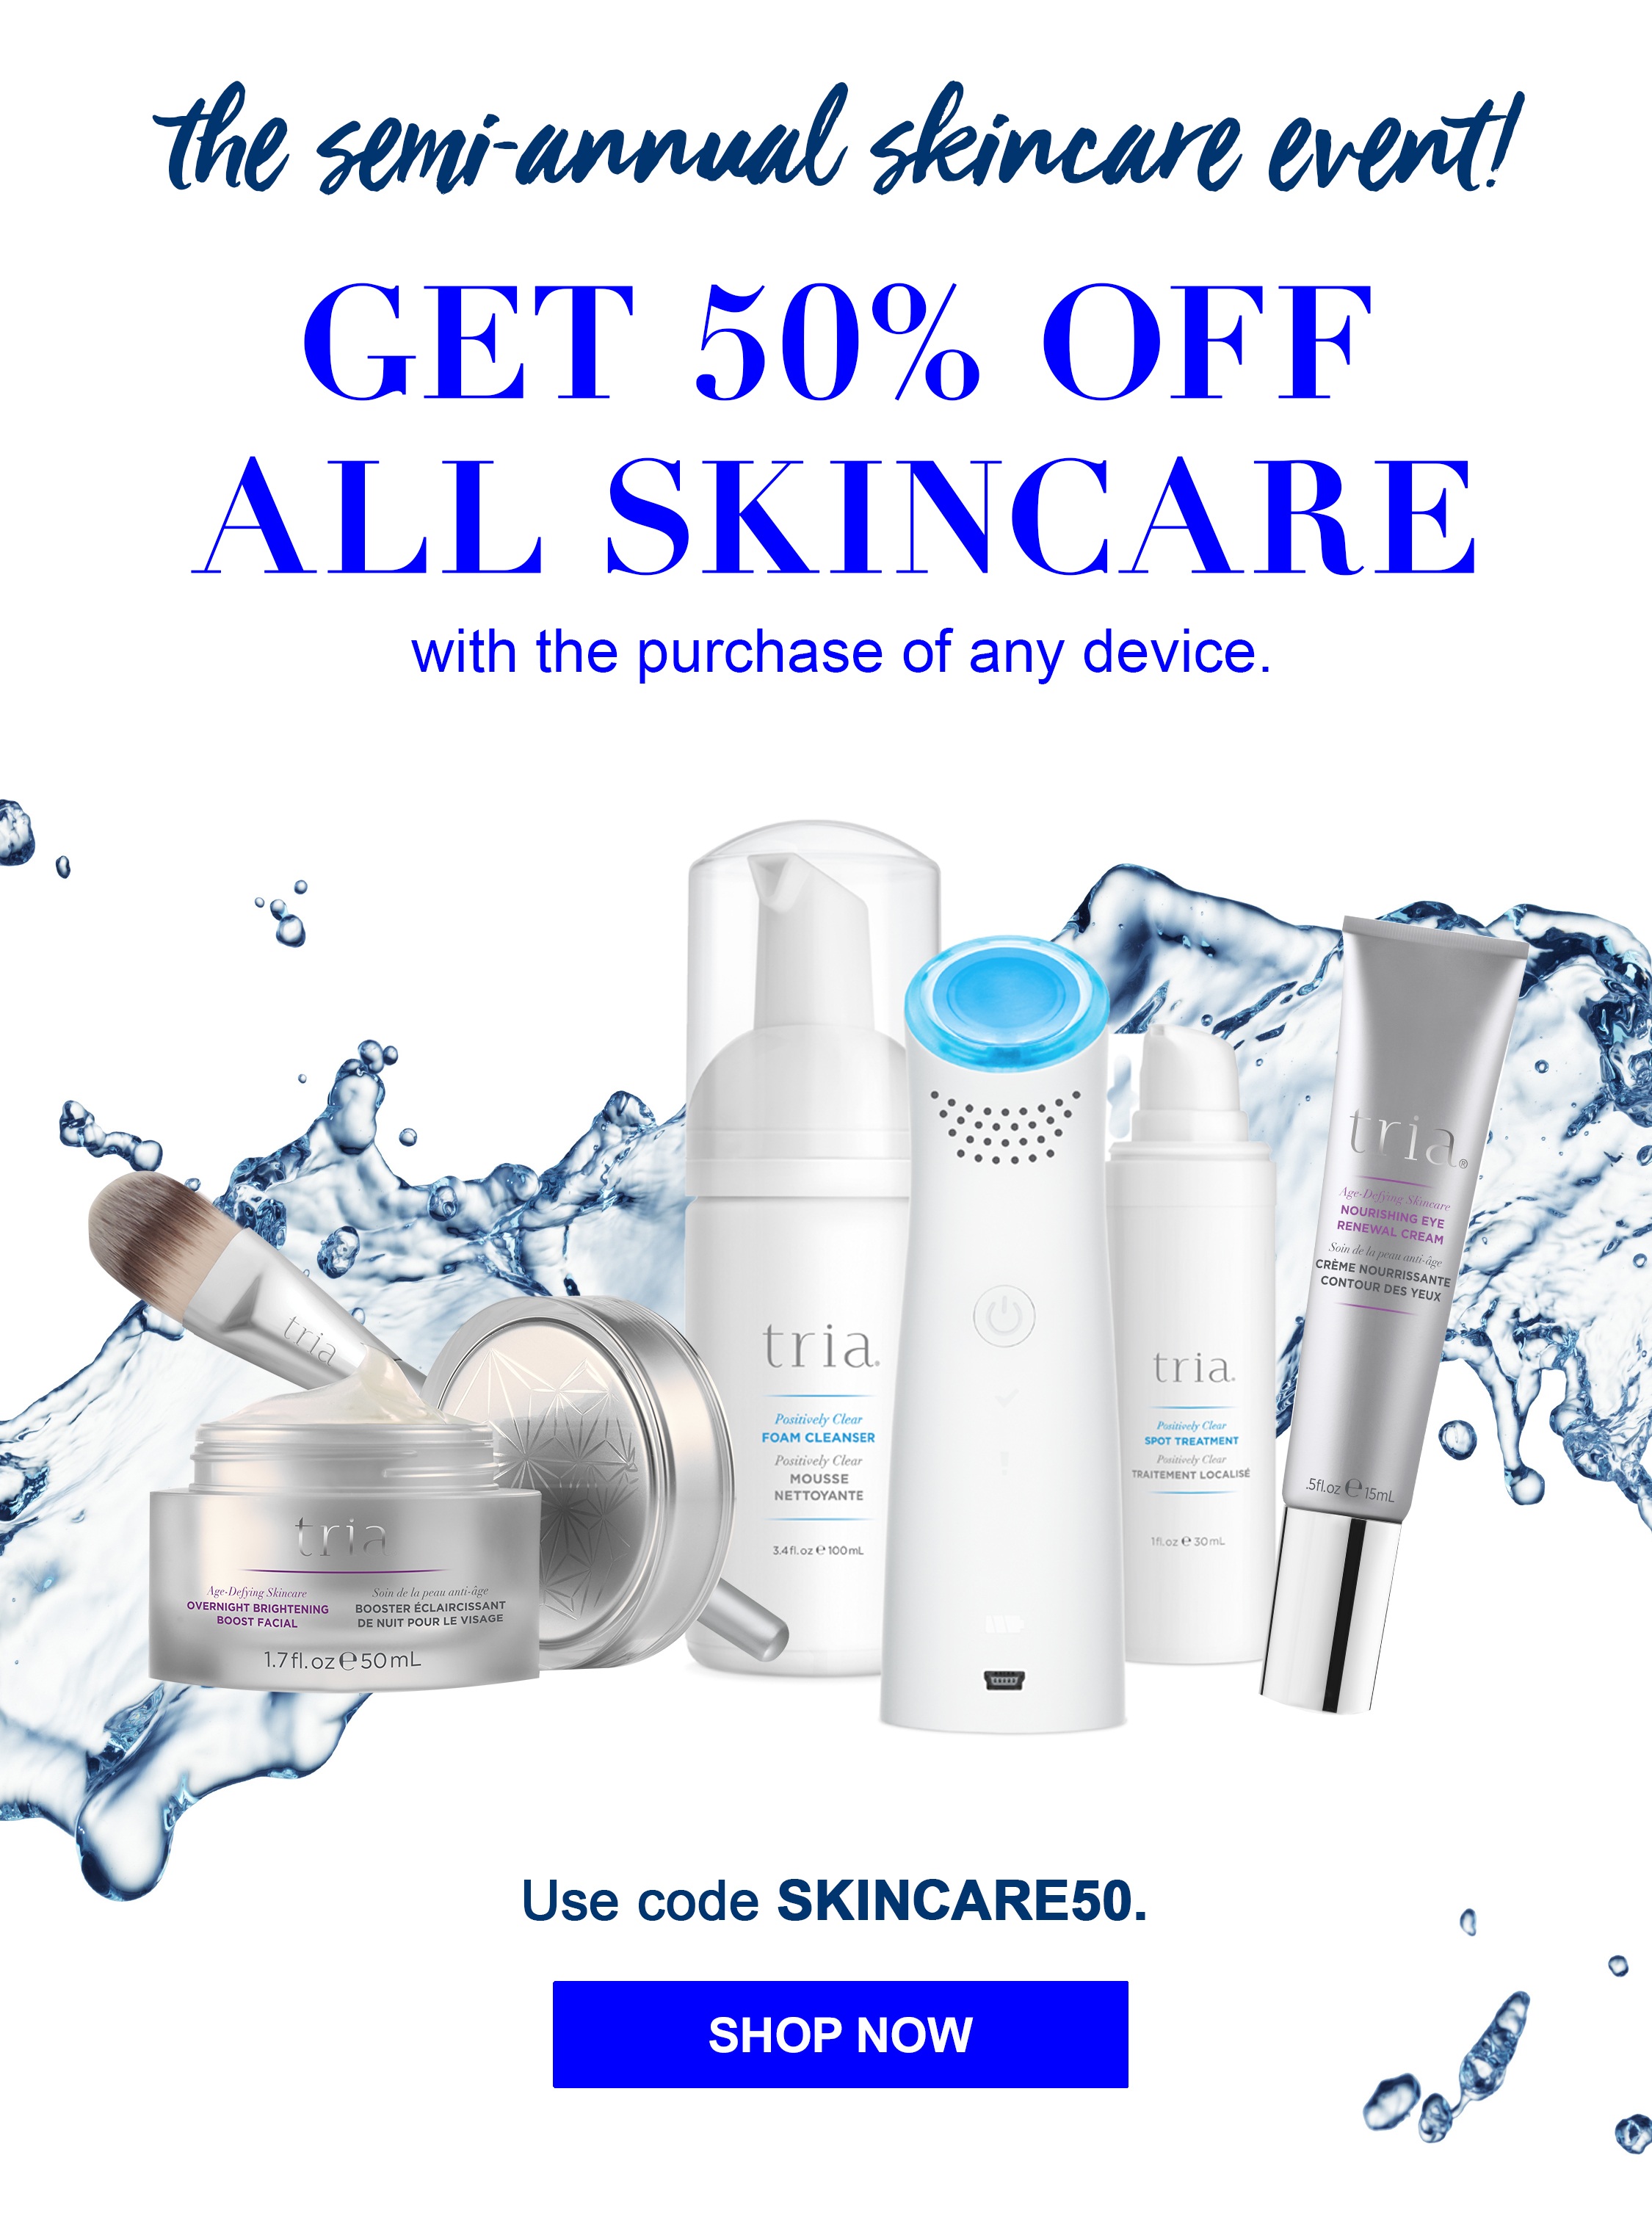 THE SEMI-ANNUAL SKINCARE EVENT IS HERE! GET 50% OFF ALL SKINCARE with the purchase of any device.